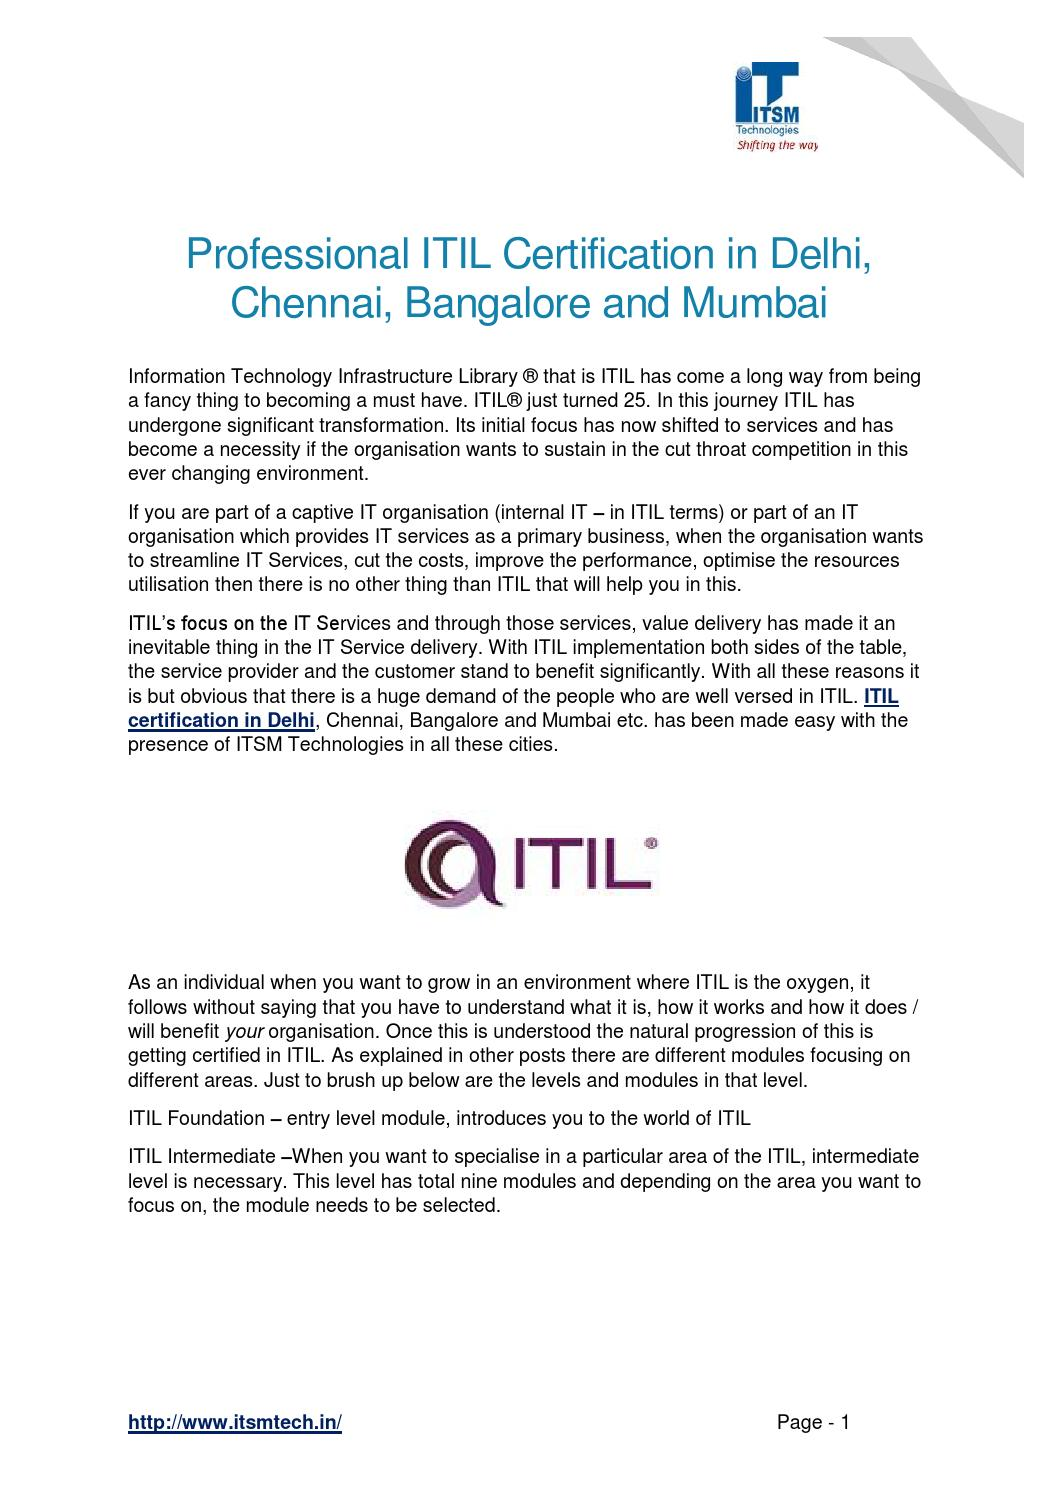 Professional Itil Certification In Delhi Chennai Bangalore And